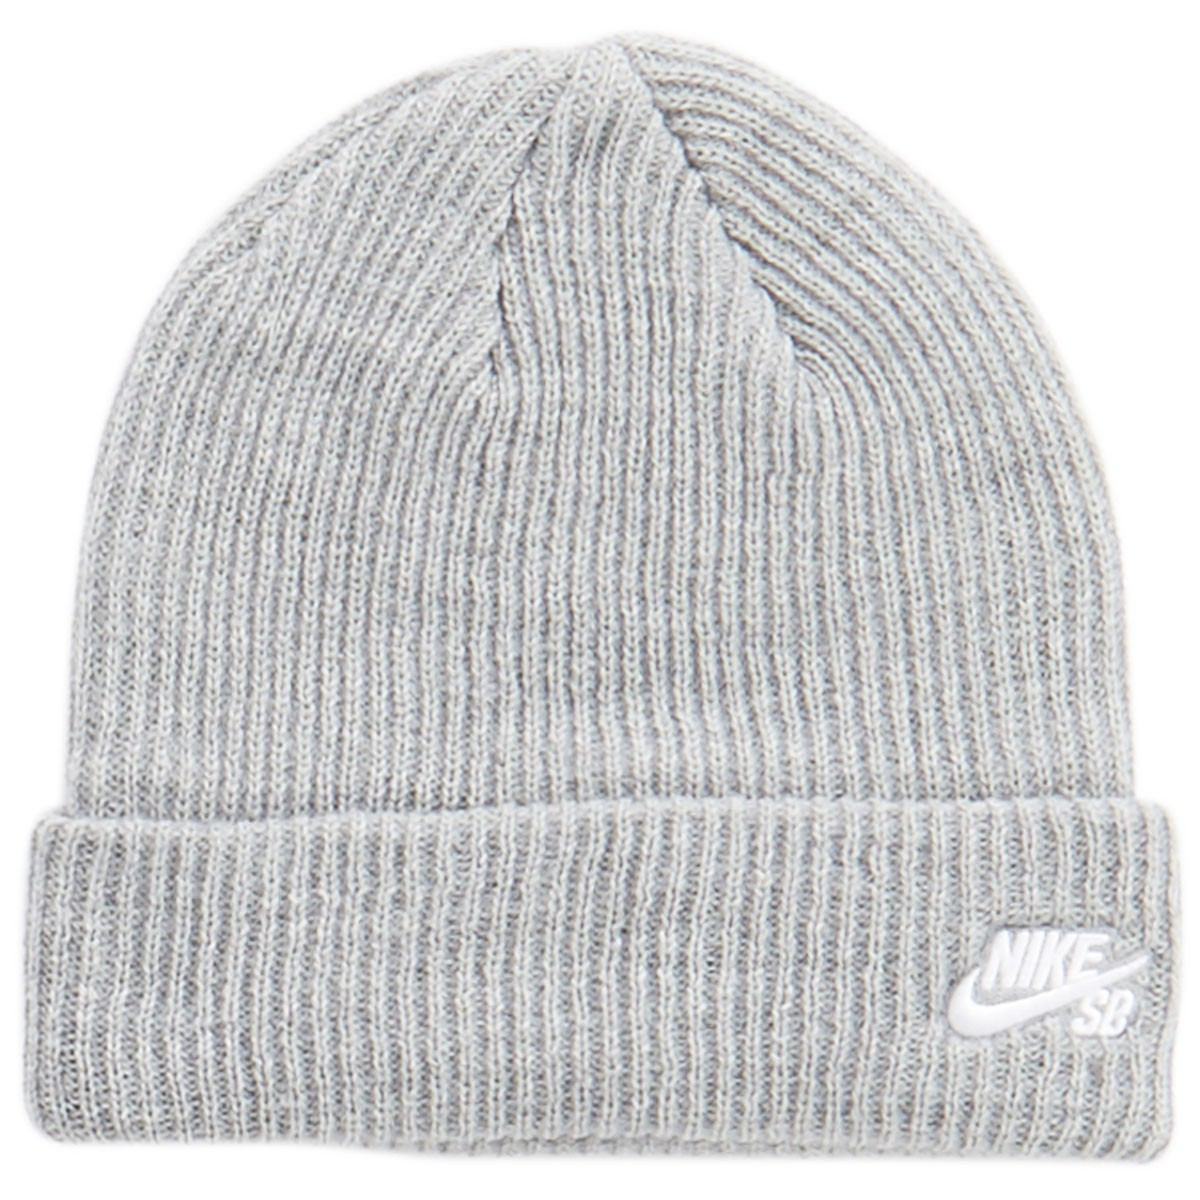 7581c8338d9 Nike SB Fisherman Beanie - Dark Grey Heather White